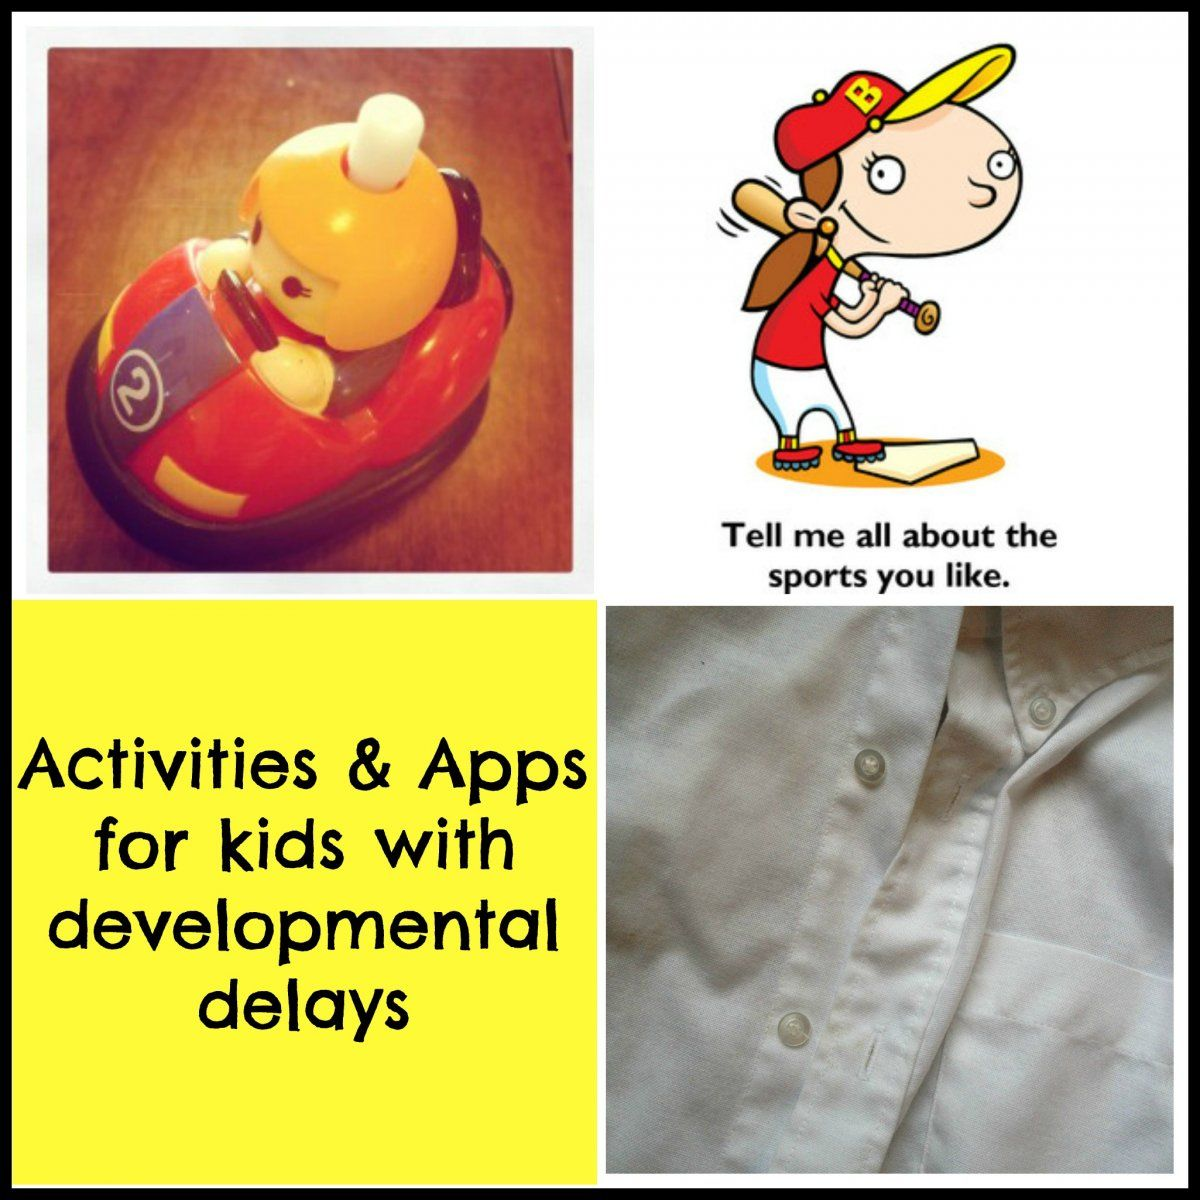 Activities & Apps for kids with developmental delays for